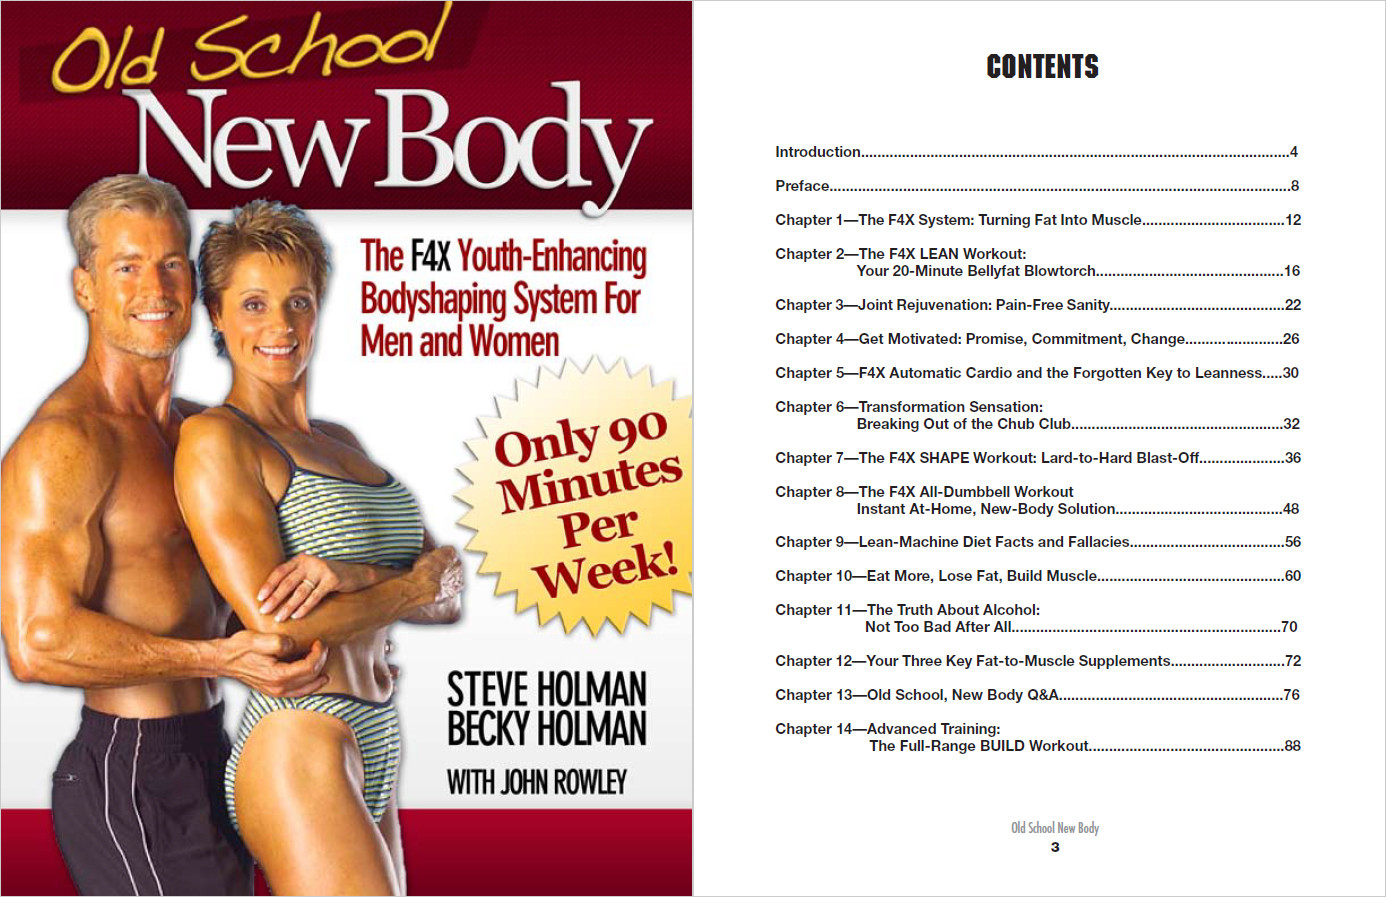 The Old School New Body Table Of Contents